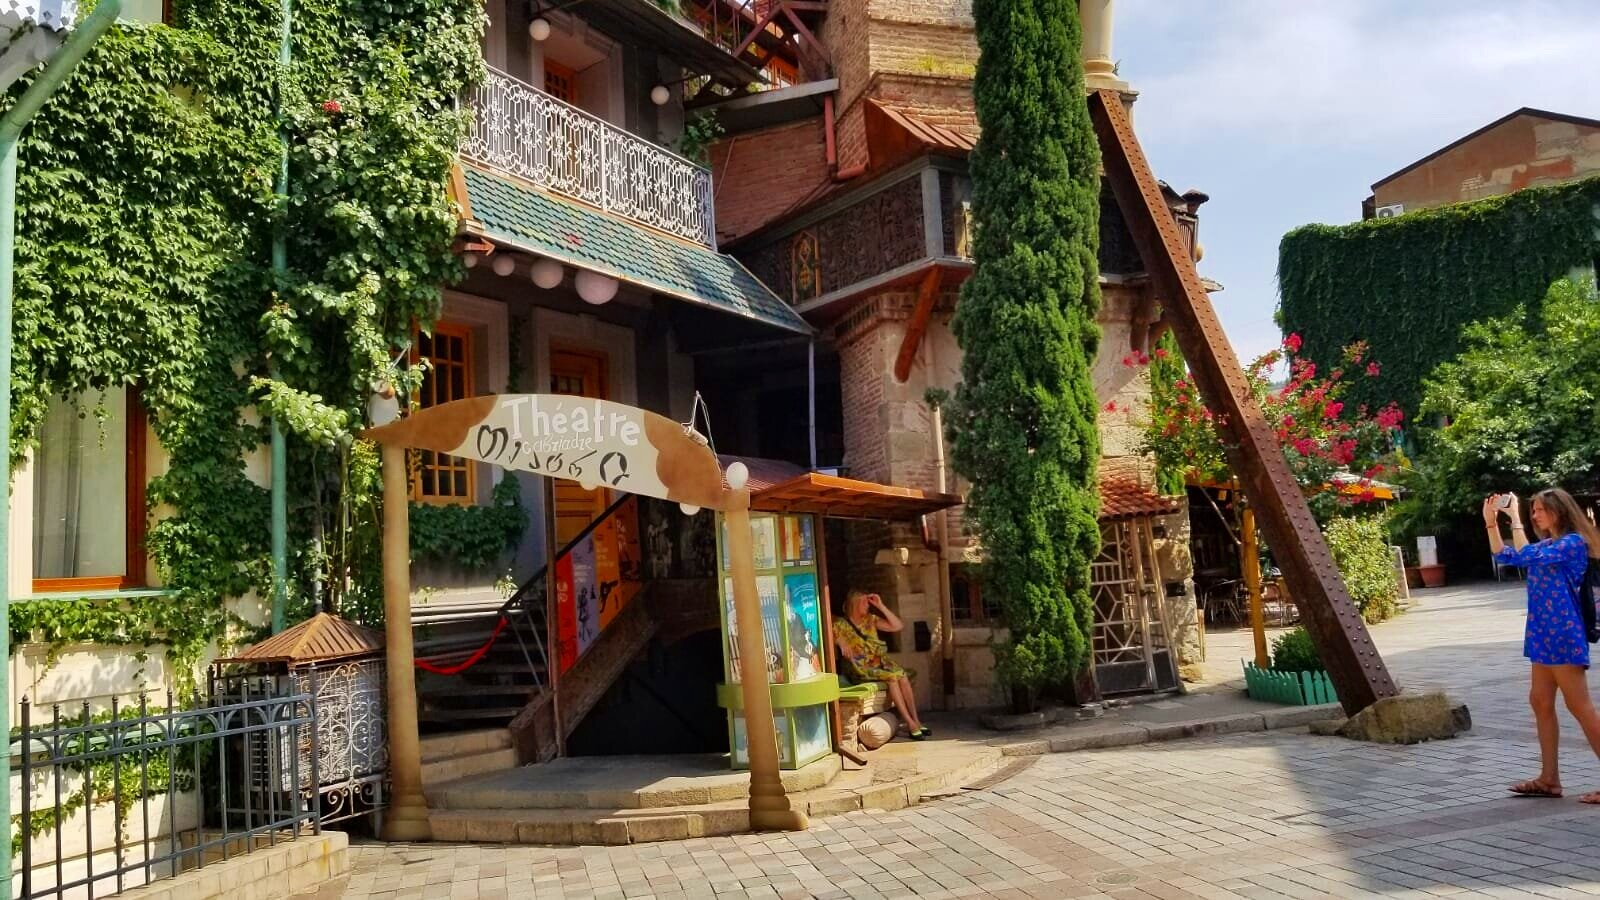 Tbilisi's old town/puppet theater